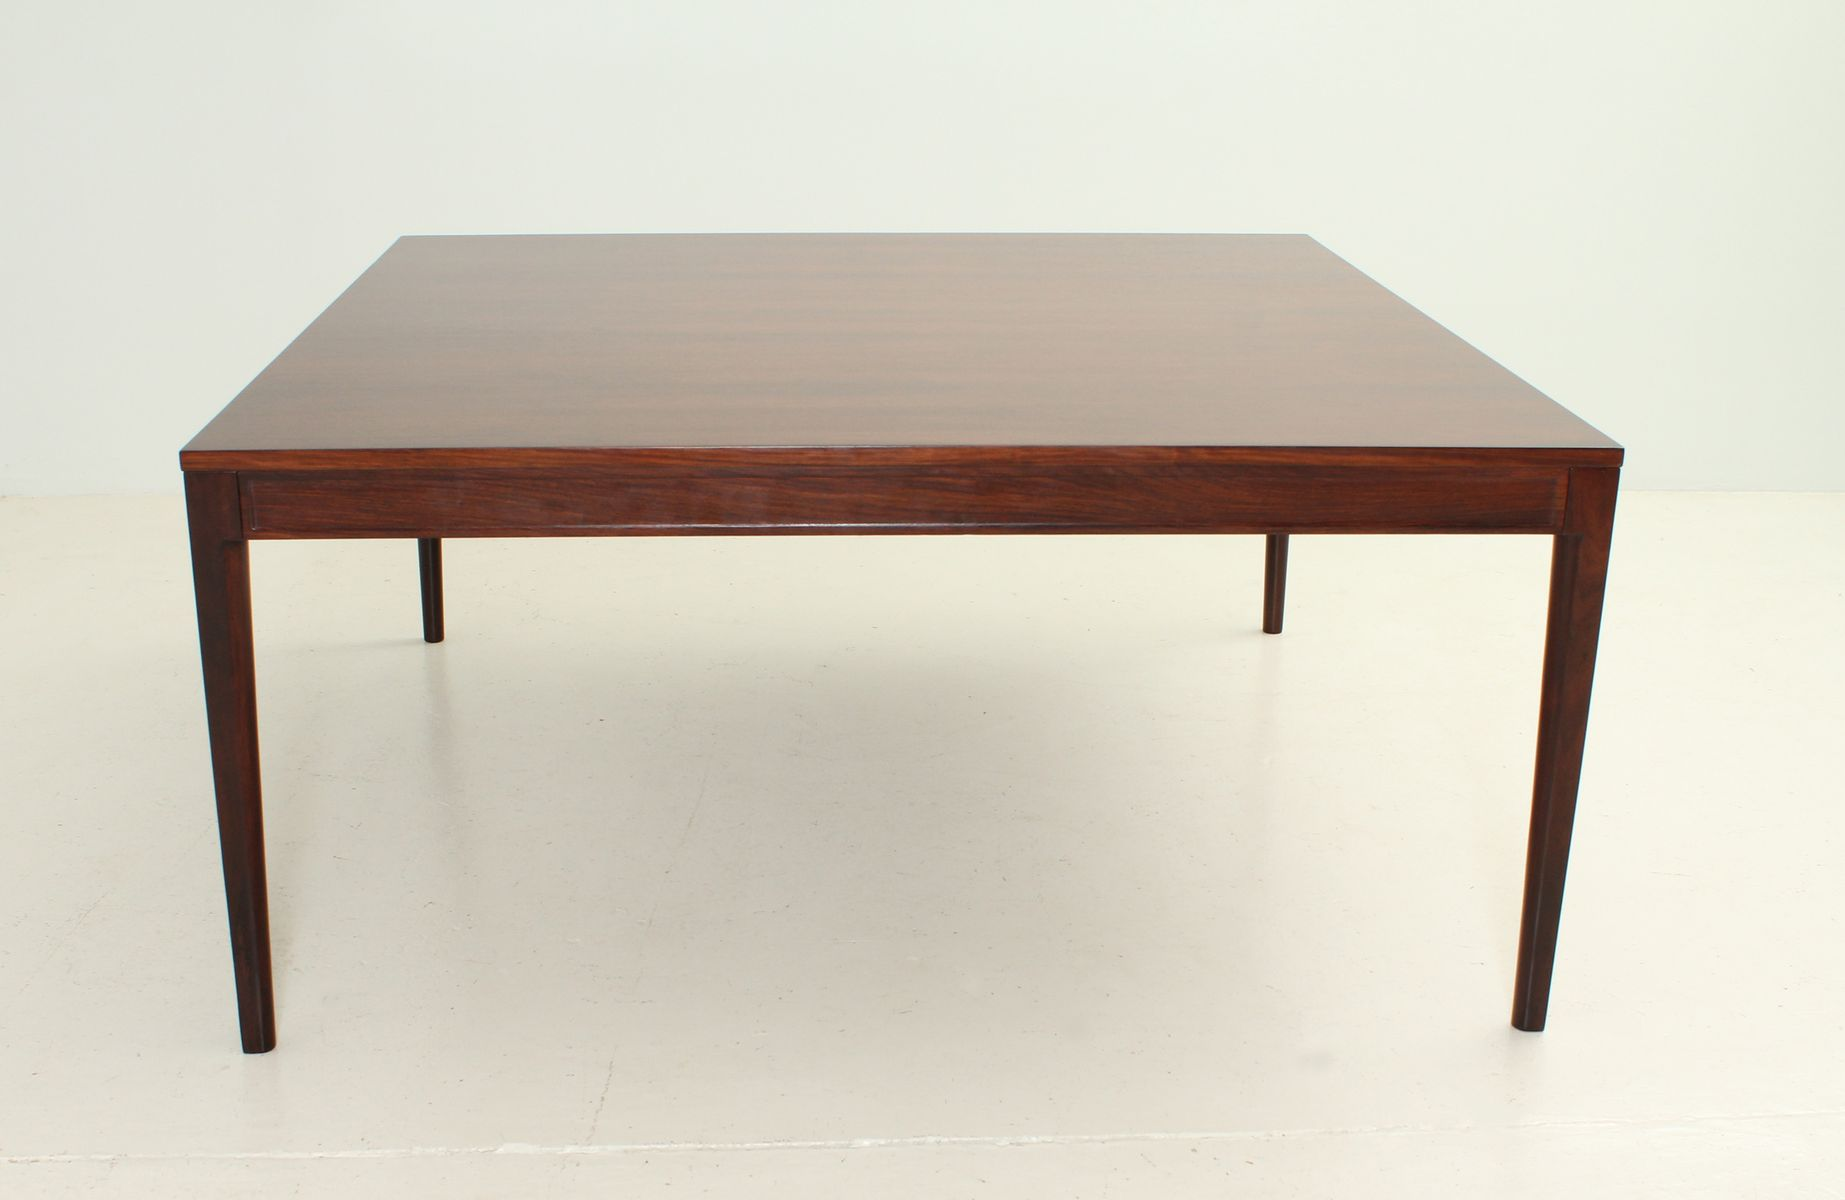 Square Diplomat Dining Table in Rosewood by Finn Juhl for sale at